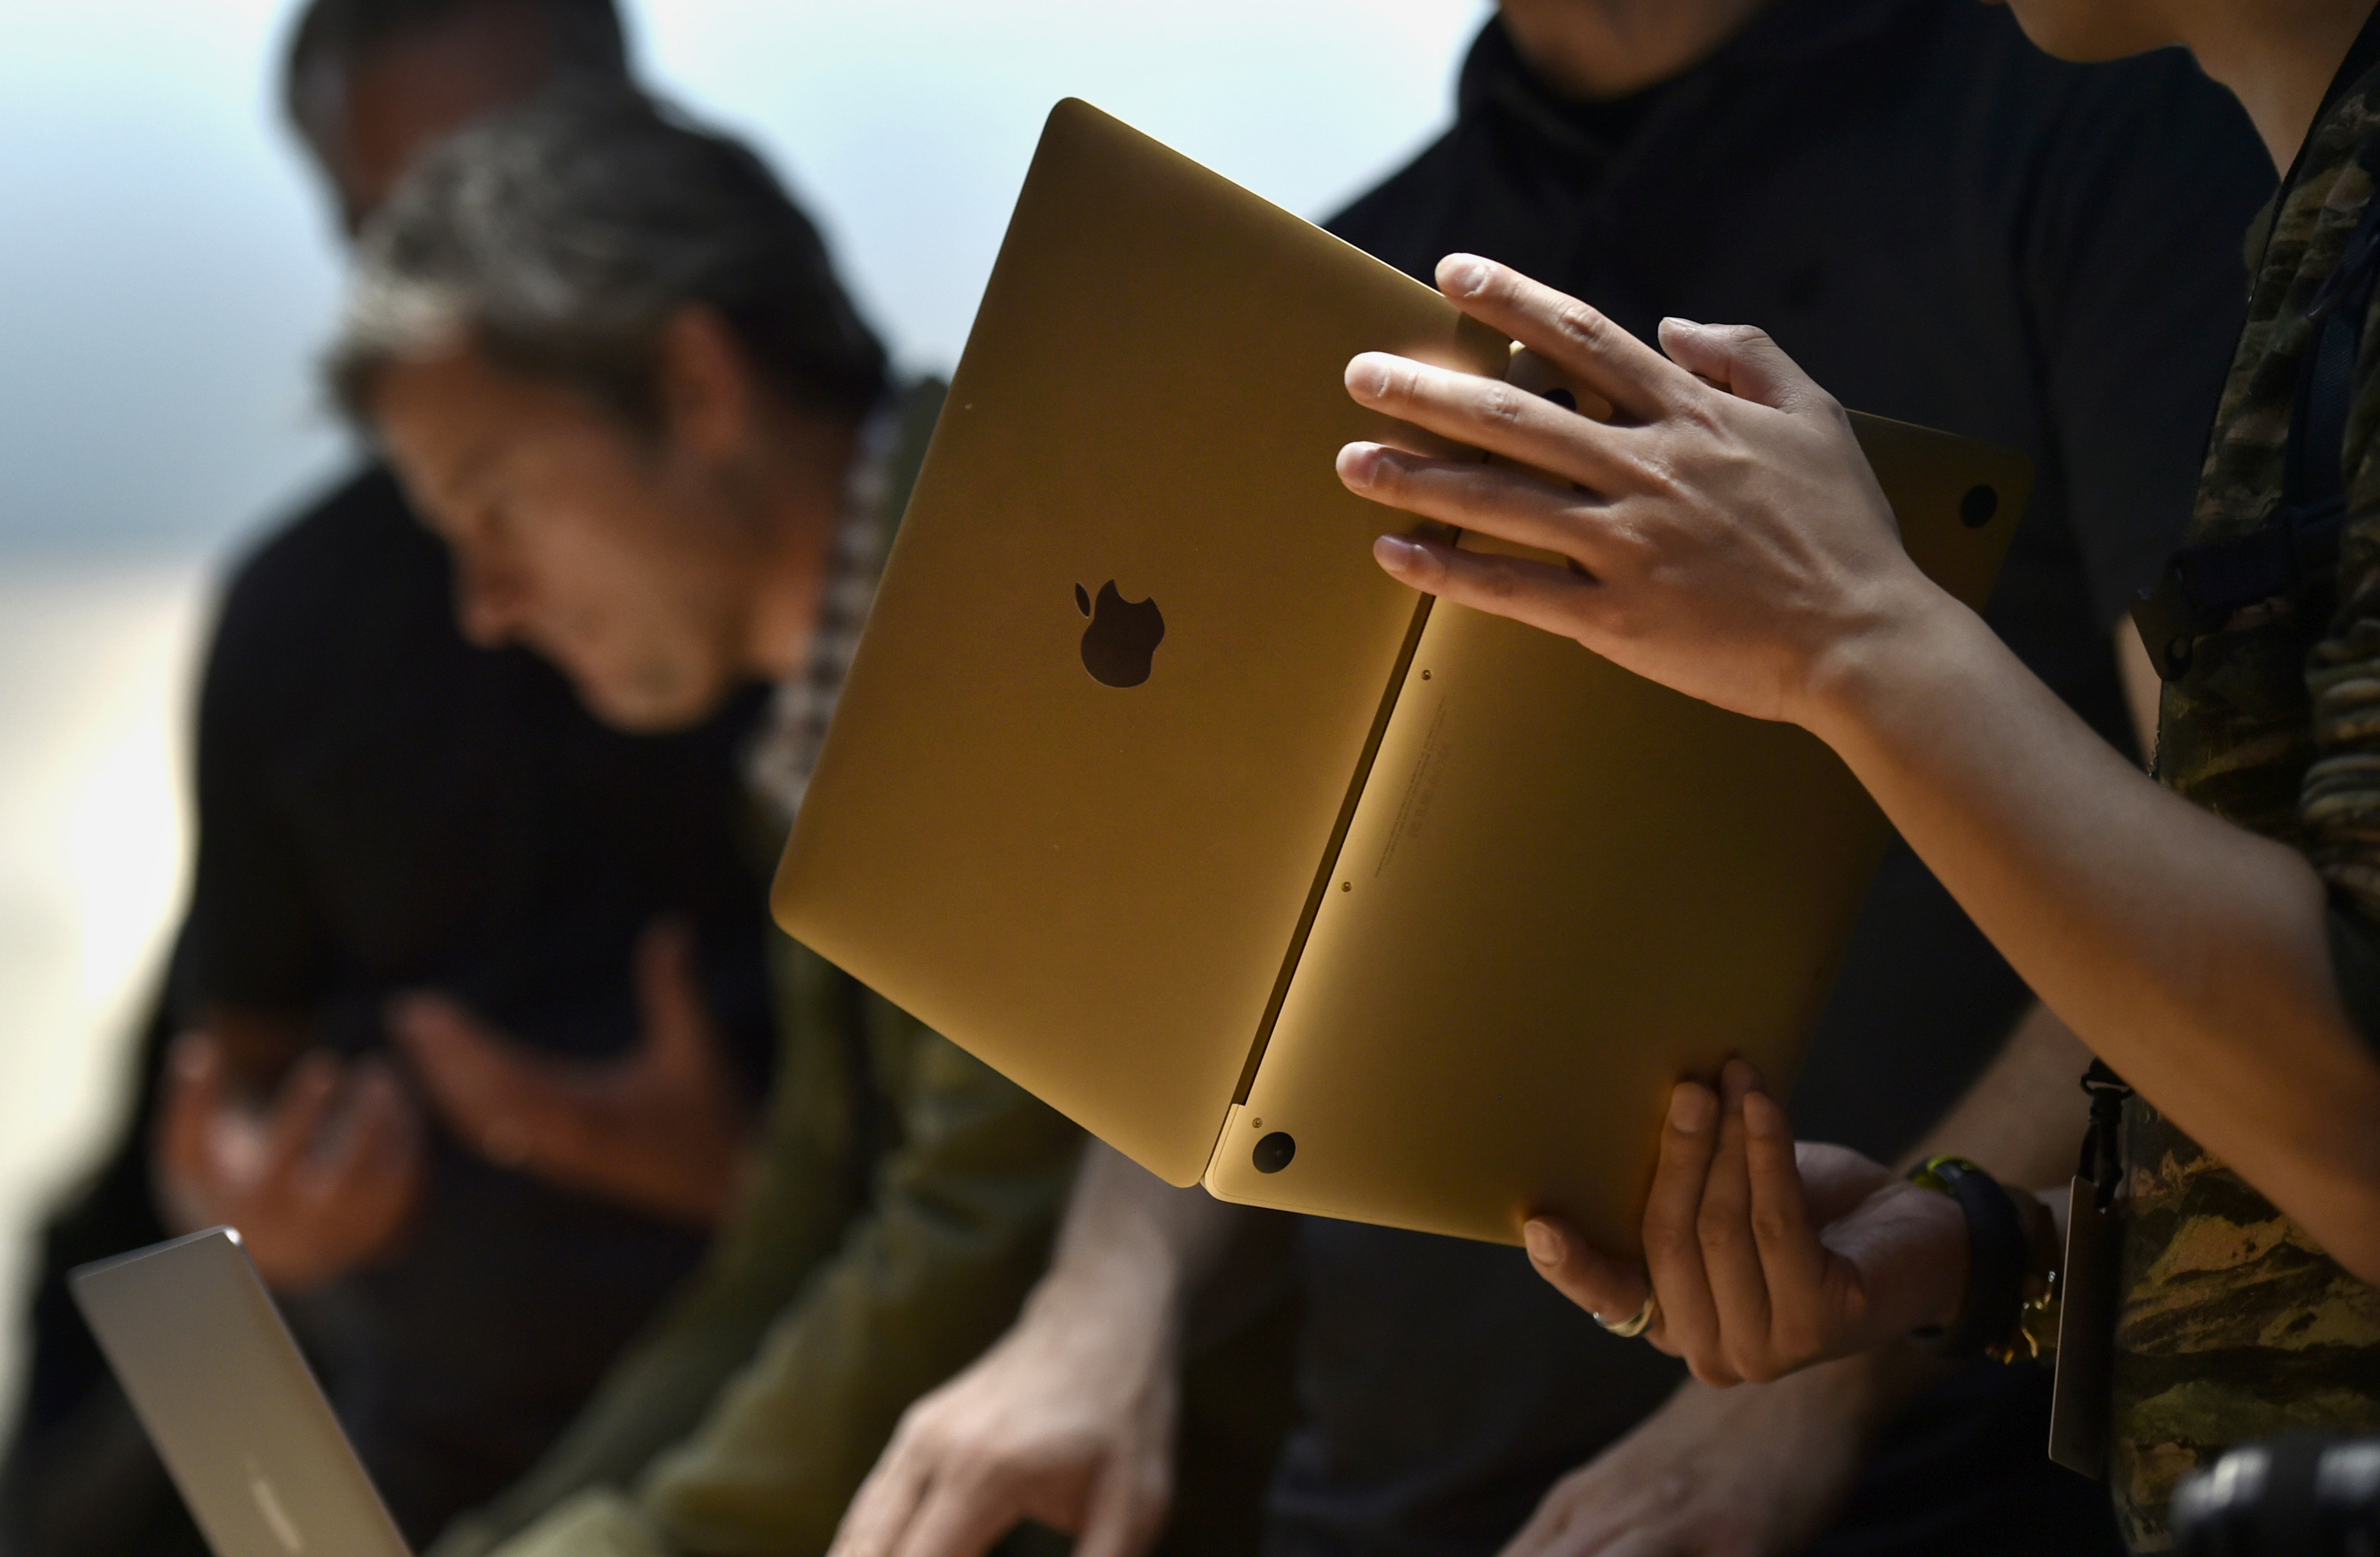 Attendees view the Apple Inc. Macbook laptop during the company's Spring Forward event in San Francisco, California, U.S., on Monday, March 9, 2015.